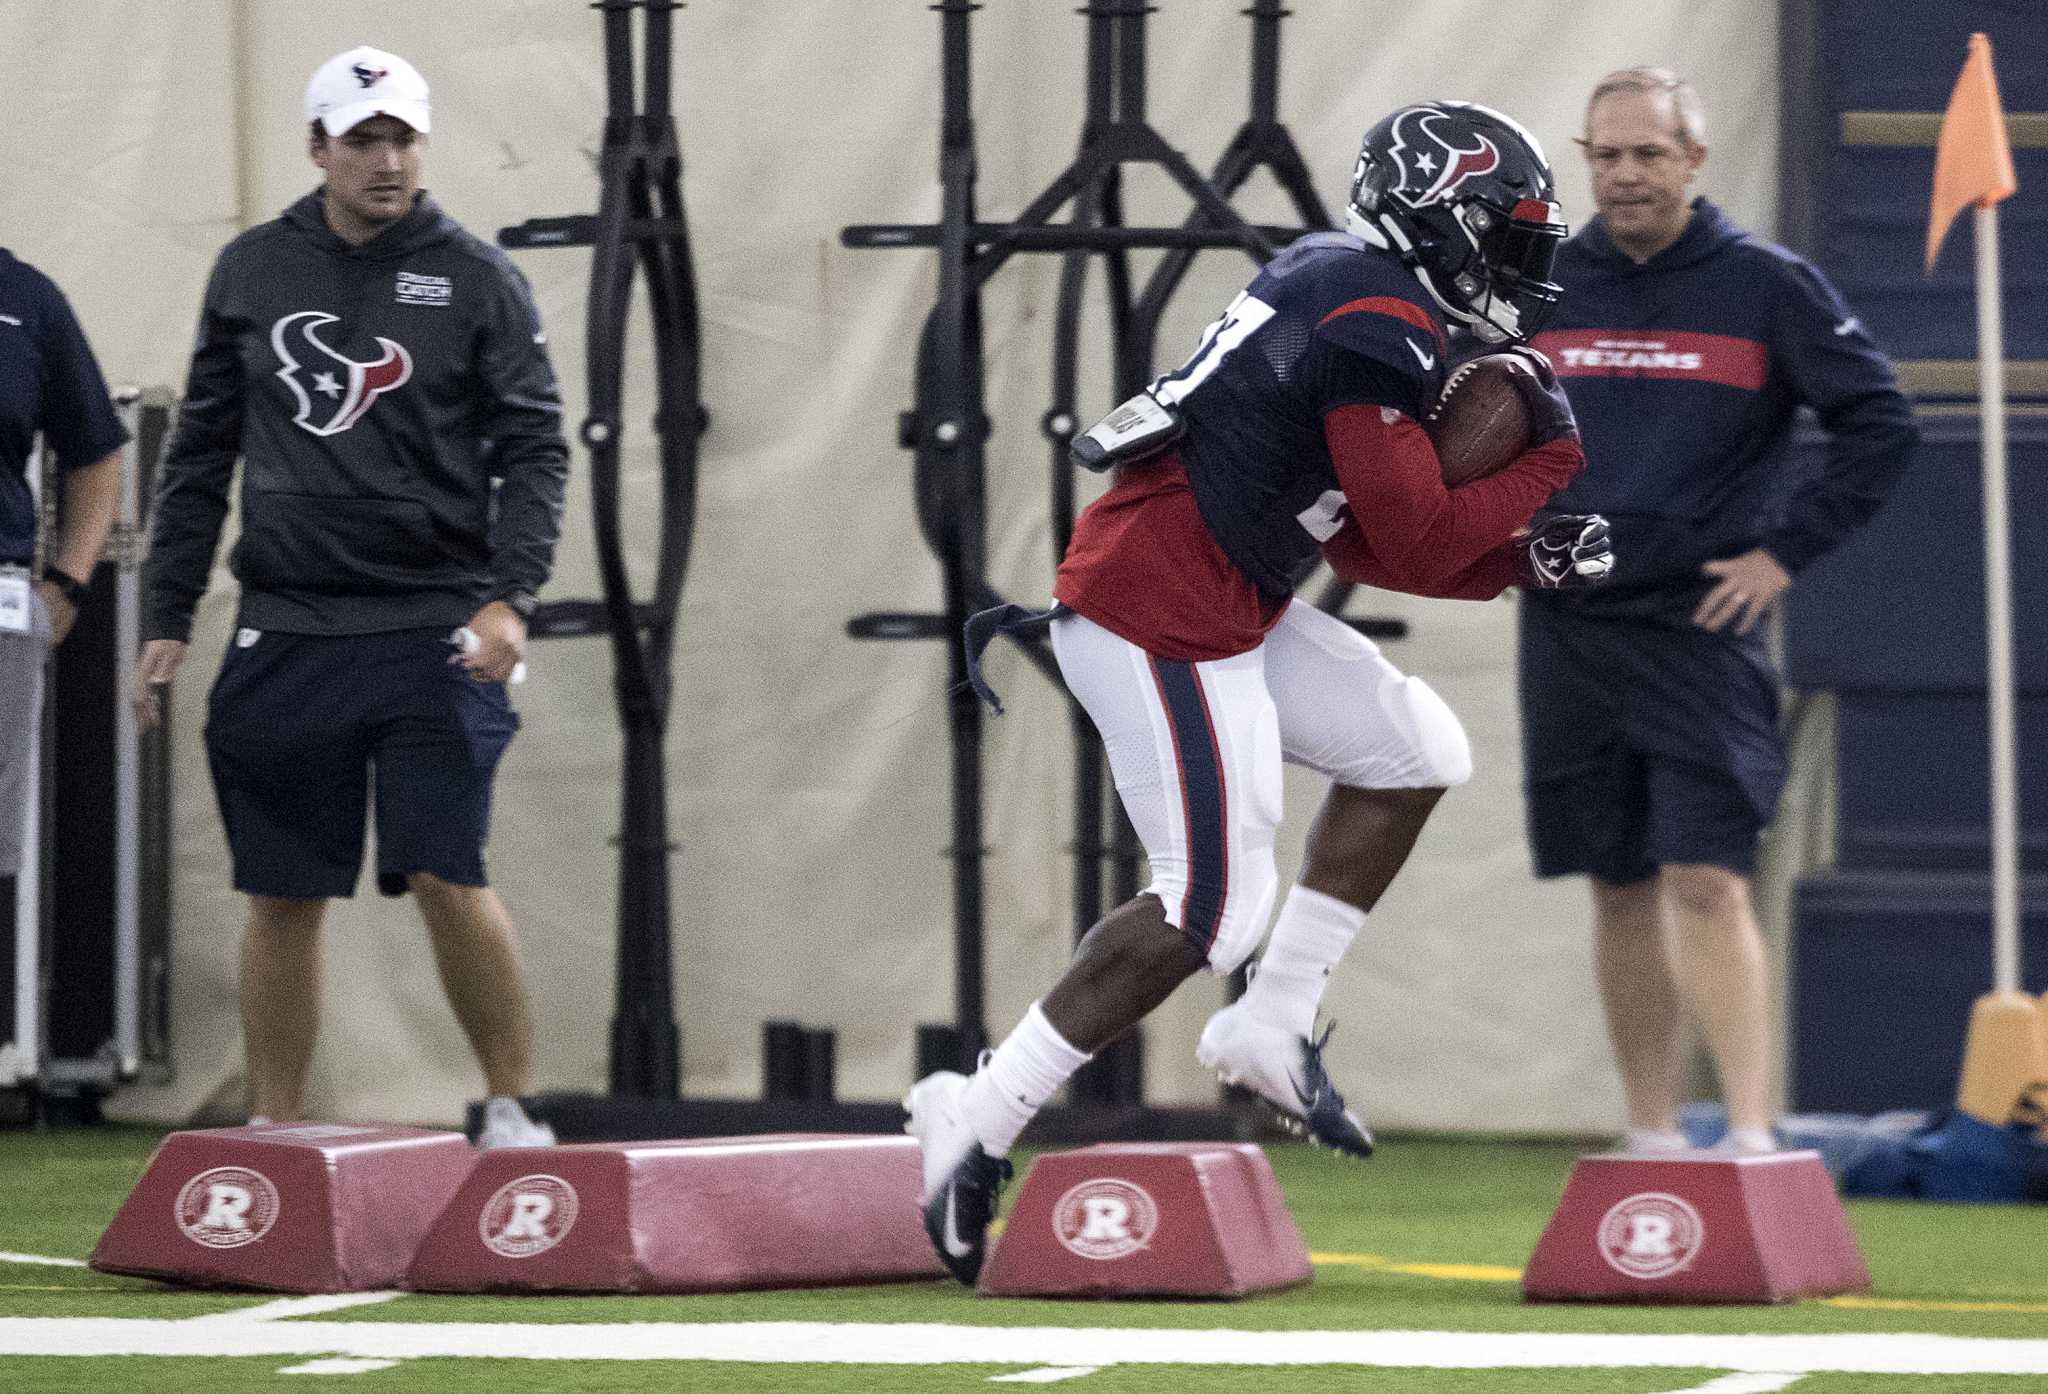 official photos d9a7a b9834 Texans camp: Day 17 updates - HoustonChronicle.com